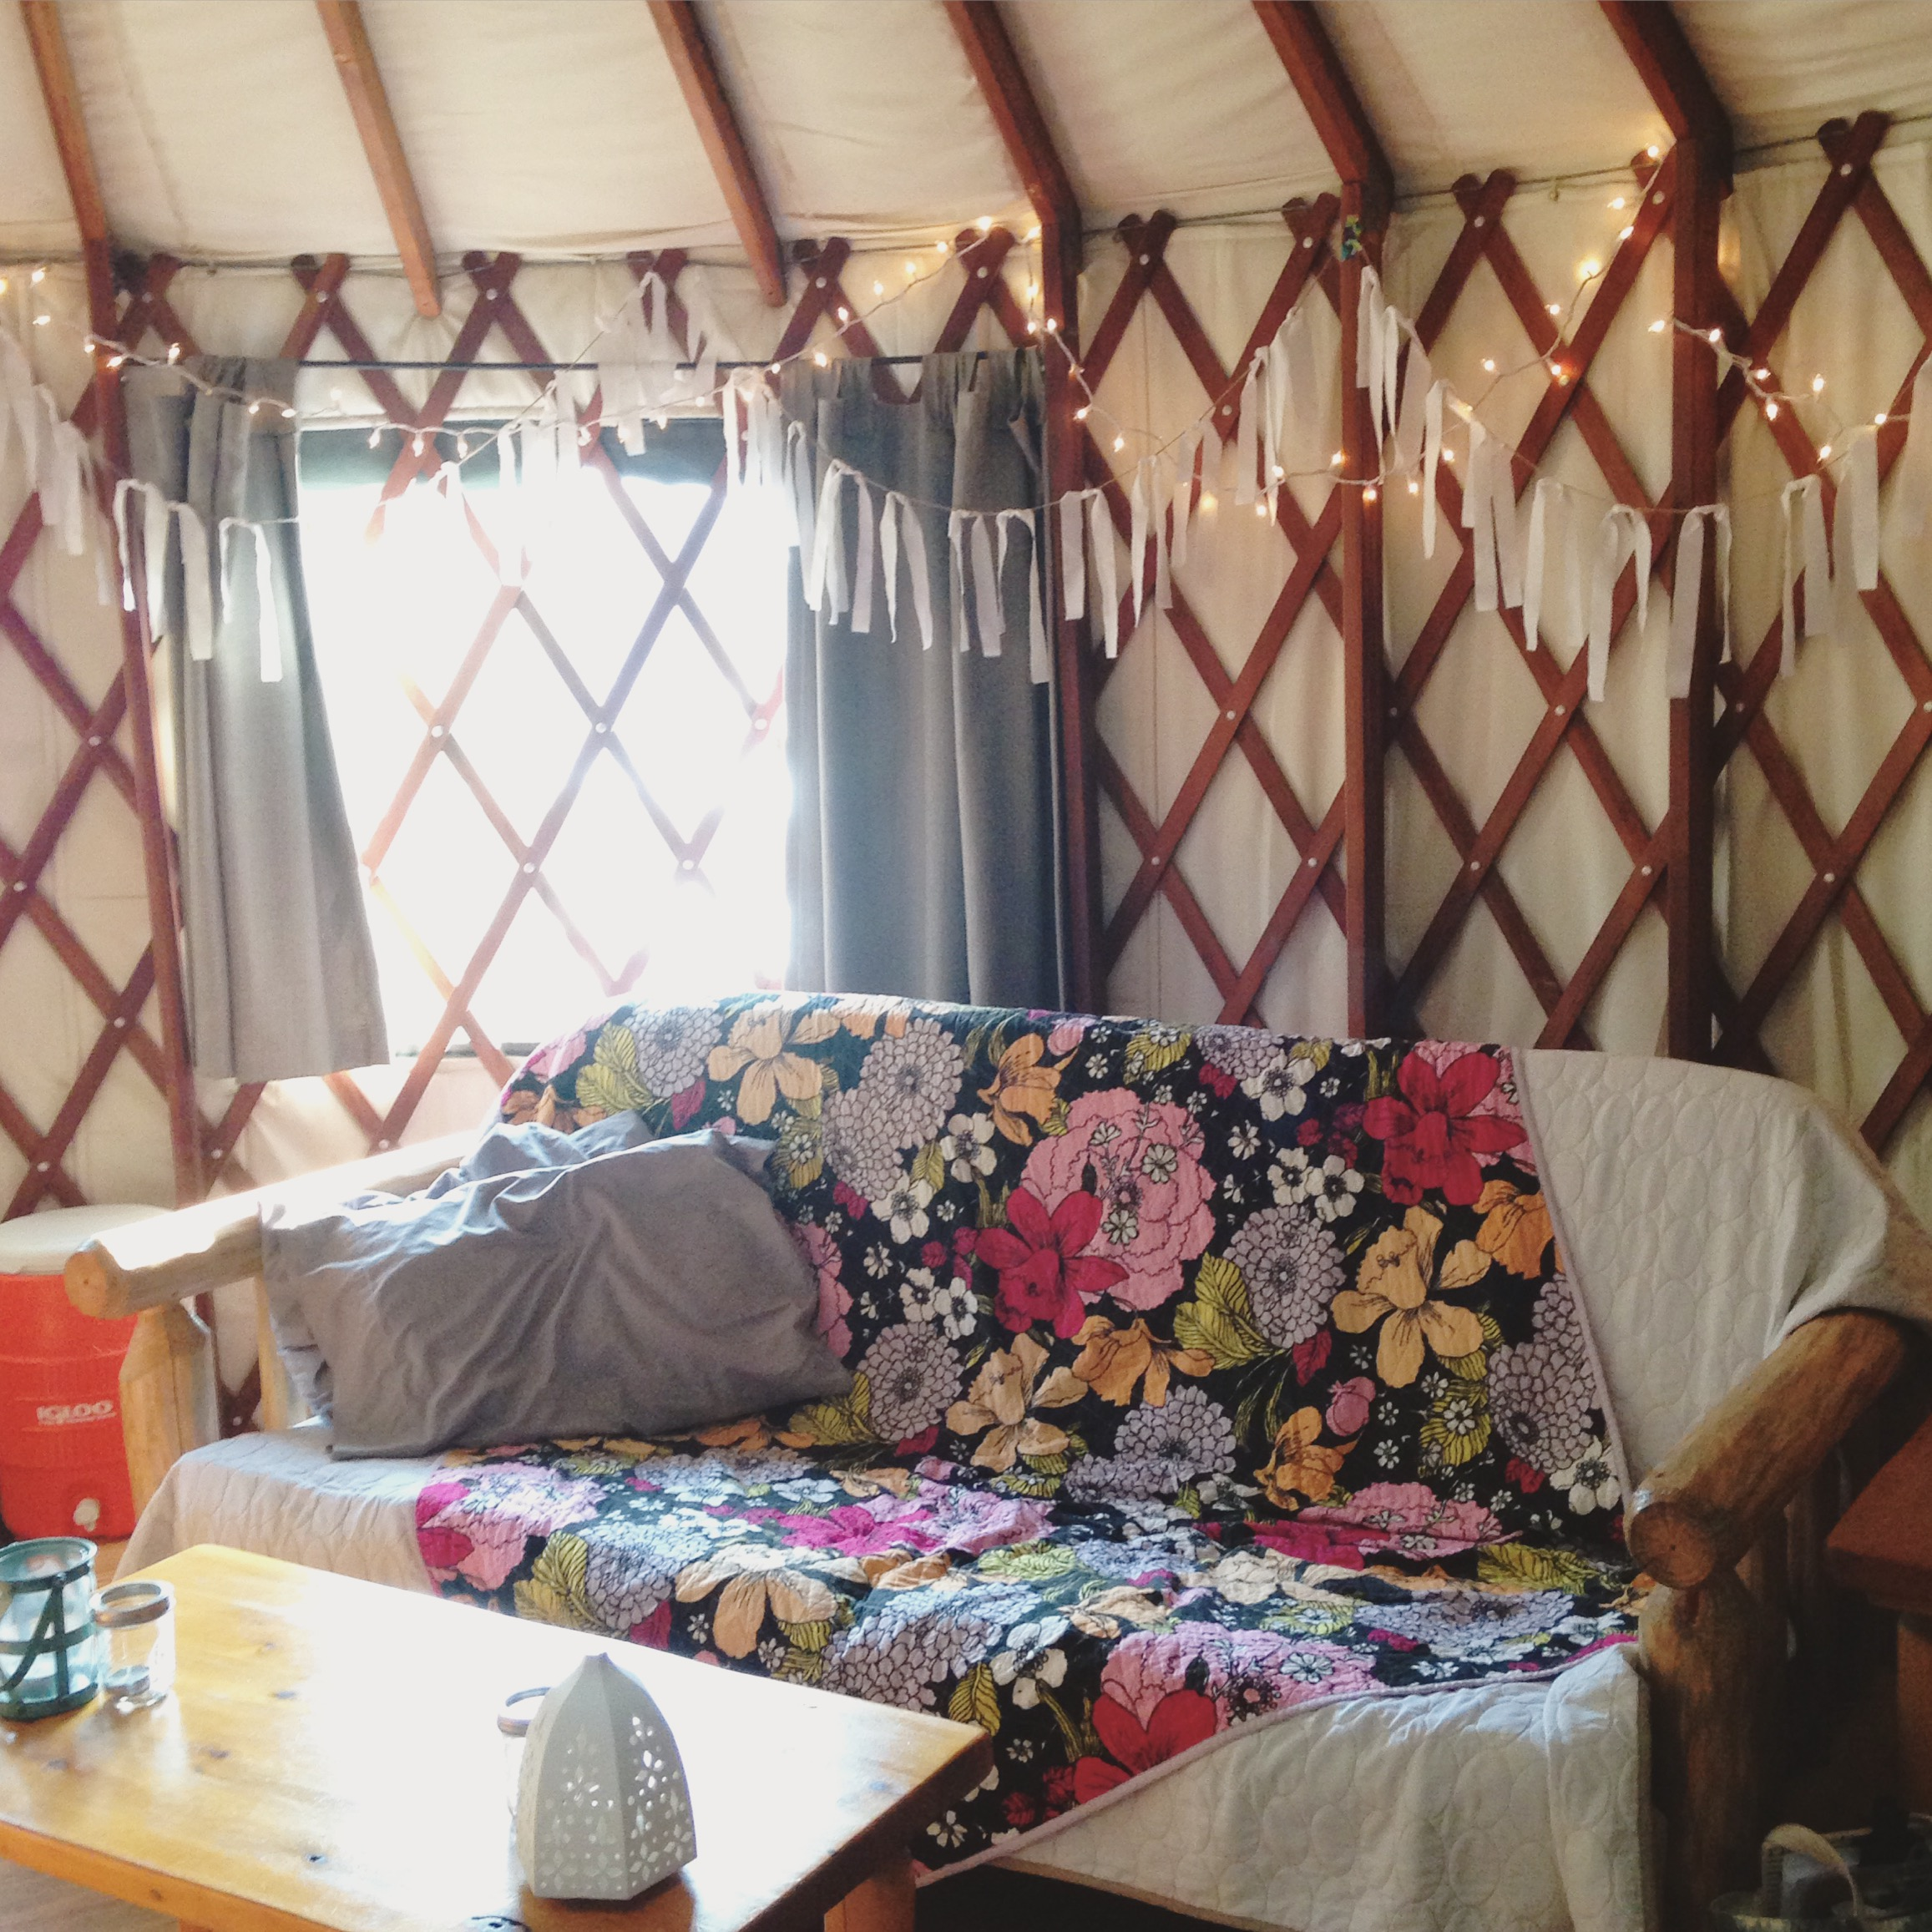 """Some twinkle lights, a bit of bunting, and some pretty quilts and candles are how we put the """"glam"""" in Glamping :)"""